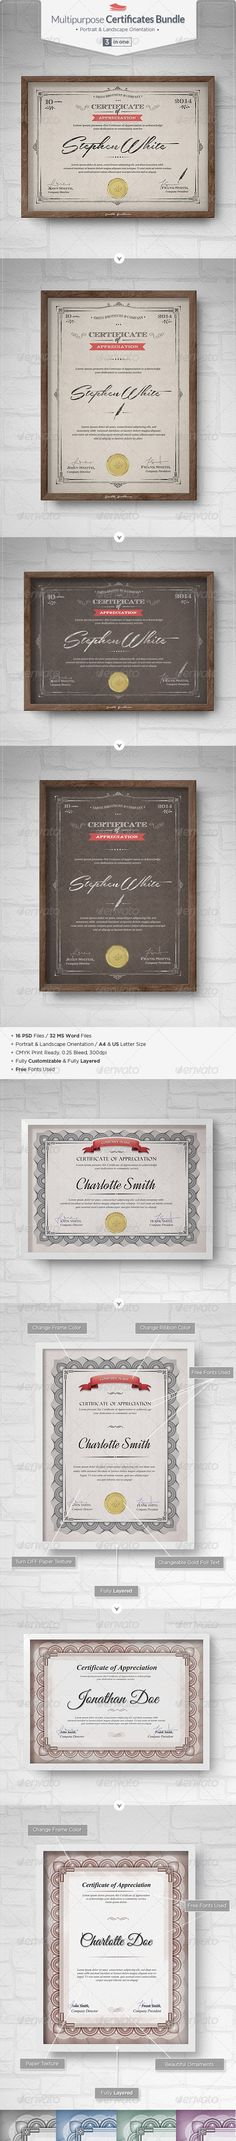 Multipurpose #Certificates #Bundle - Certificates #Stationery Download here: https://graphicriver.net/item/multipurpose-certificates-bundle/7230729?ref=alena994